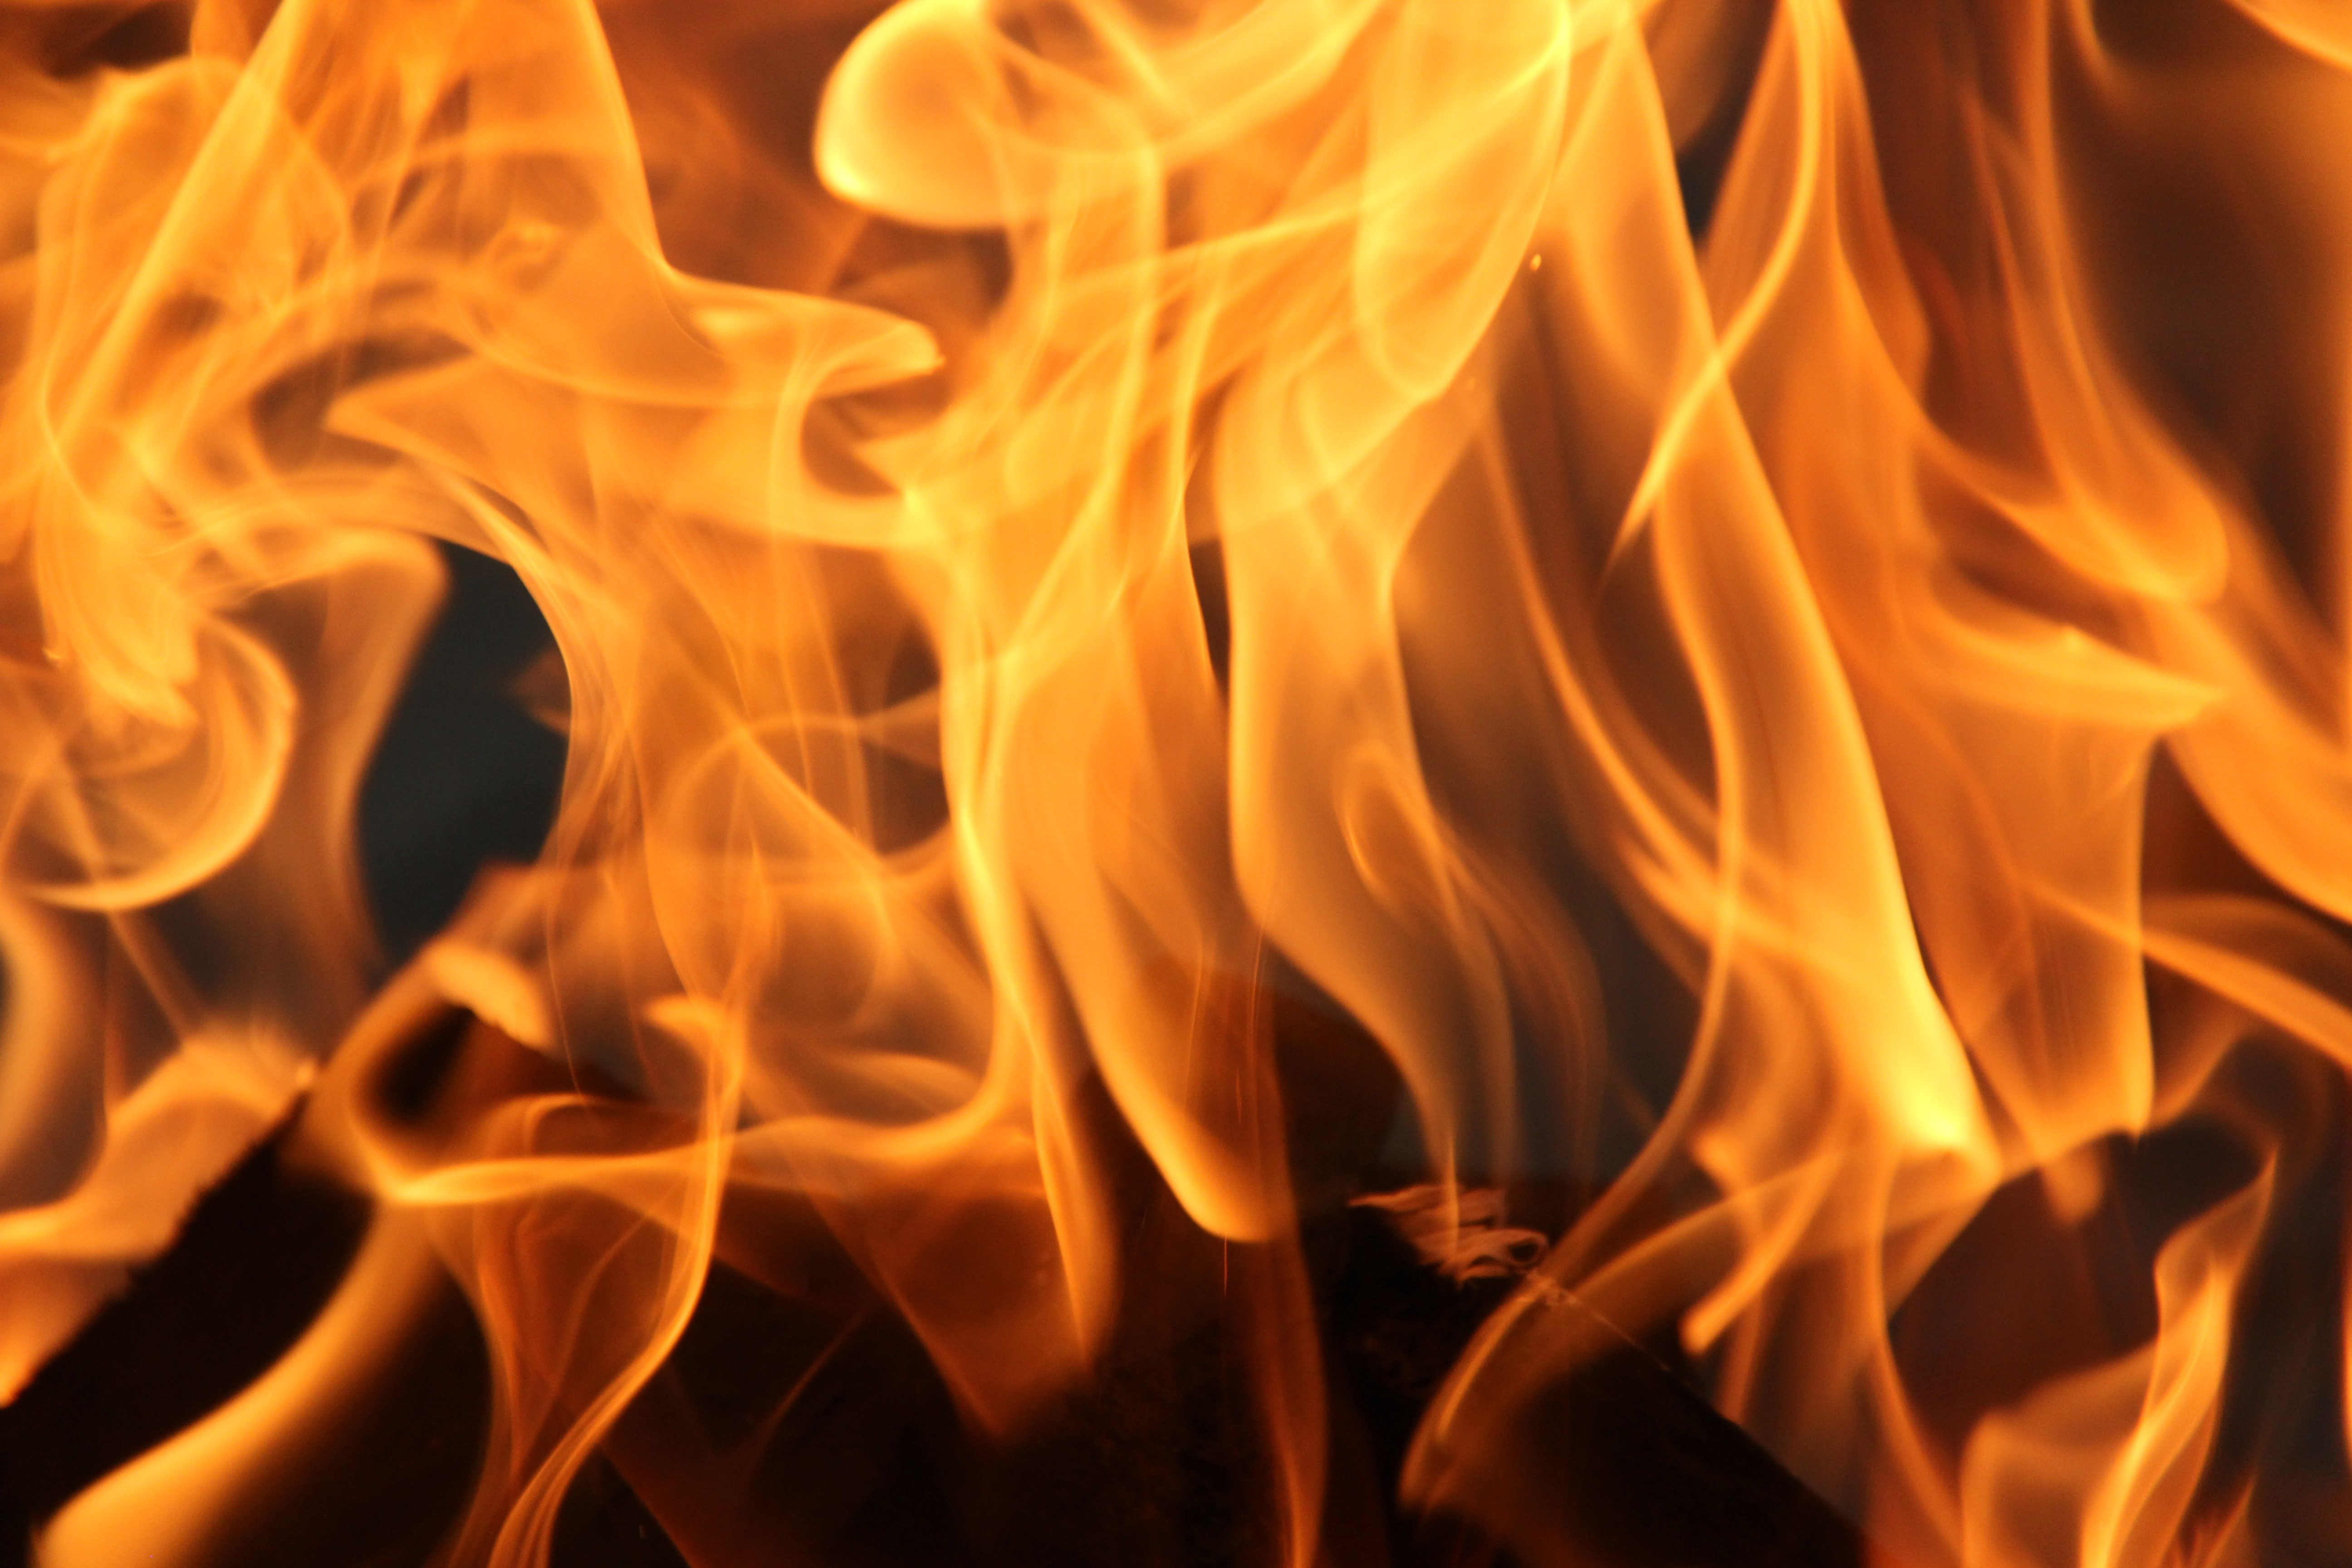 Wood waste catches fire in Musandam